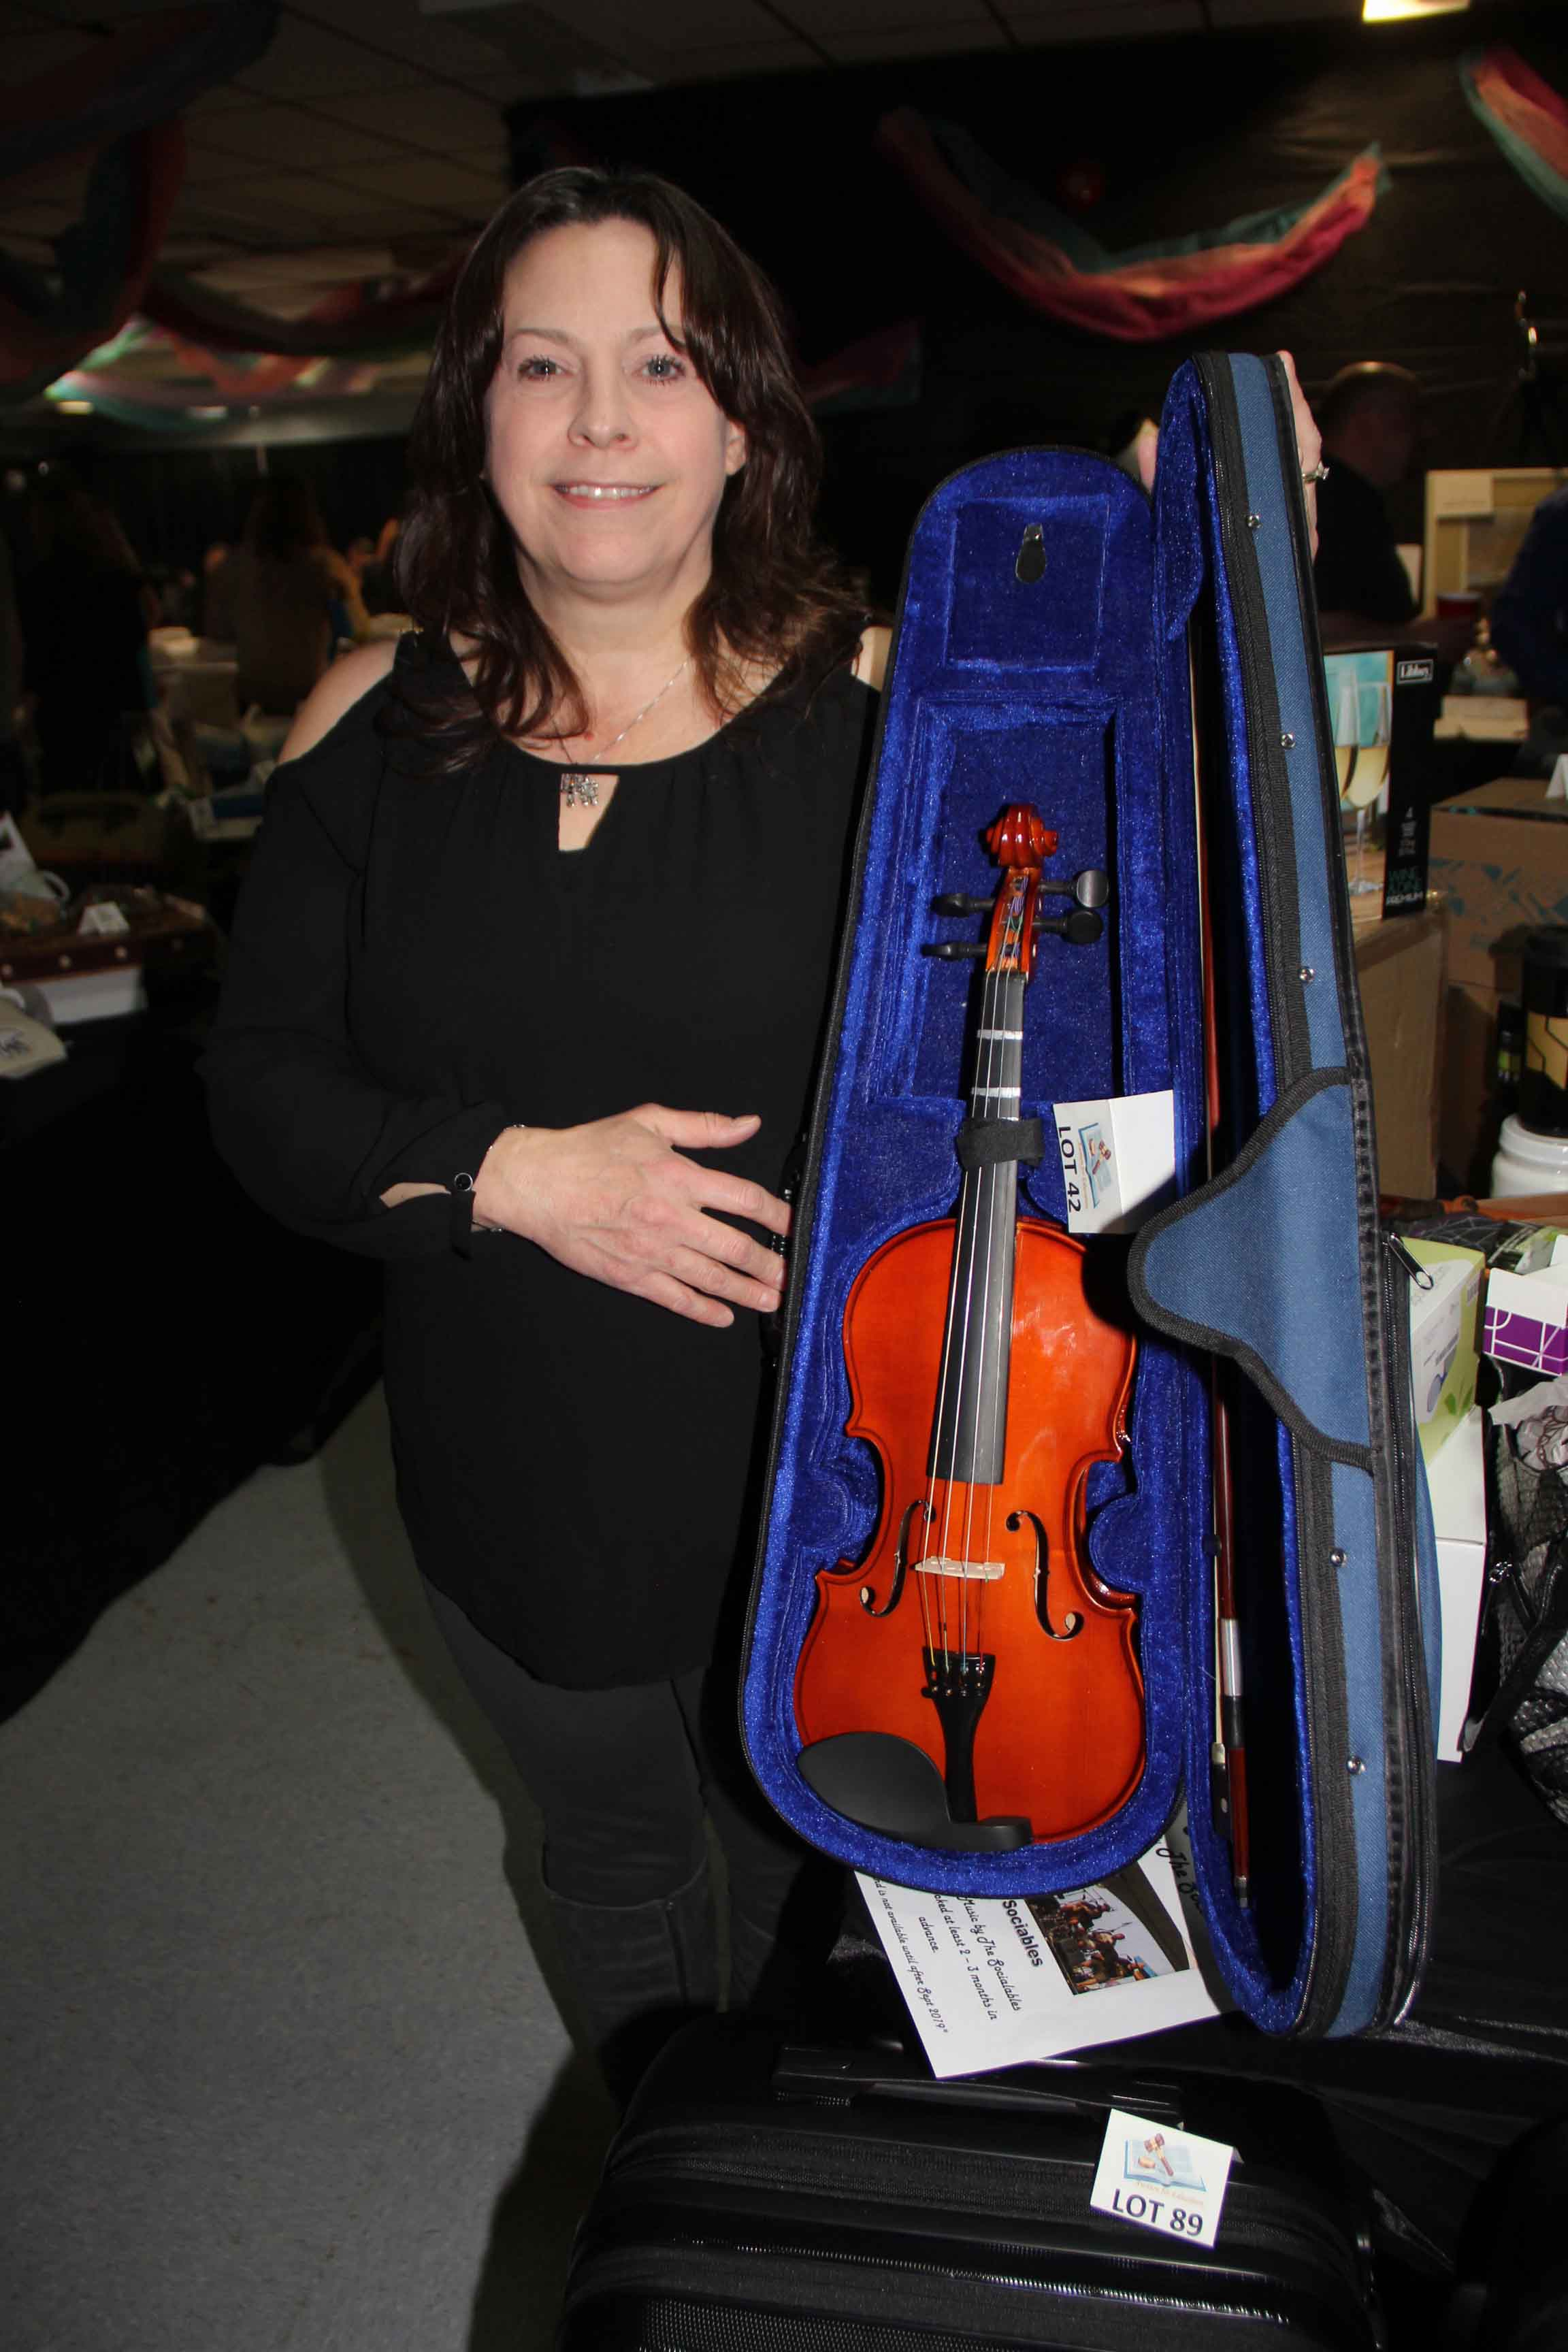 Jill Morse, an organizer of the new Auction for Education, displays a fiddle – one of the many items up for bids at the May 4 fundraising event. It was presented by the Parent Action Committees at the four schools in Hay River to replace the former Hay River Playschool Auction. Paul Bickford/NNSL photo